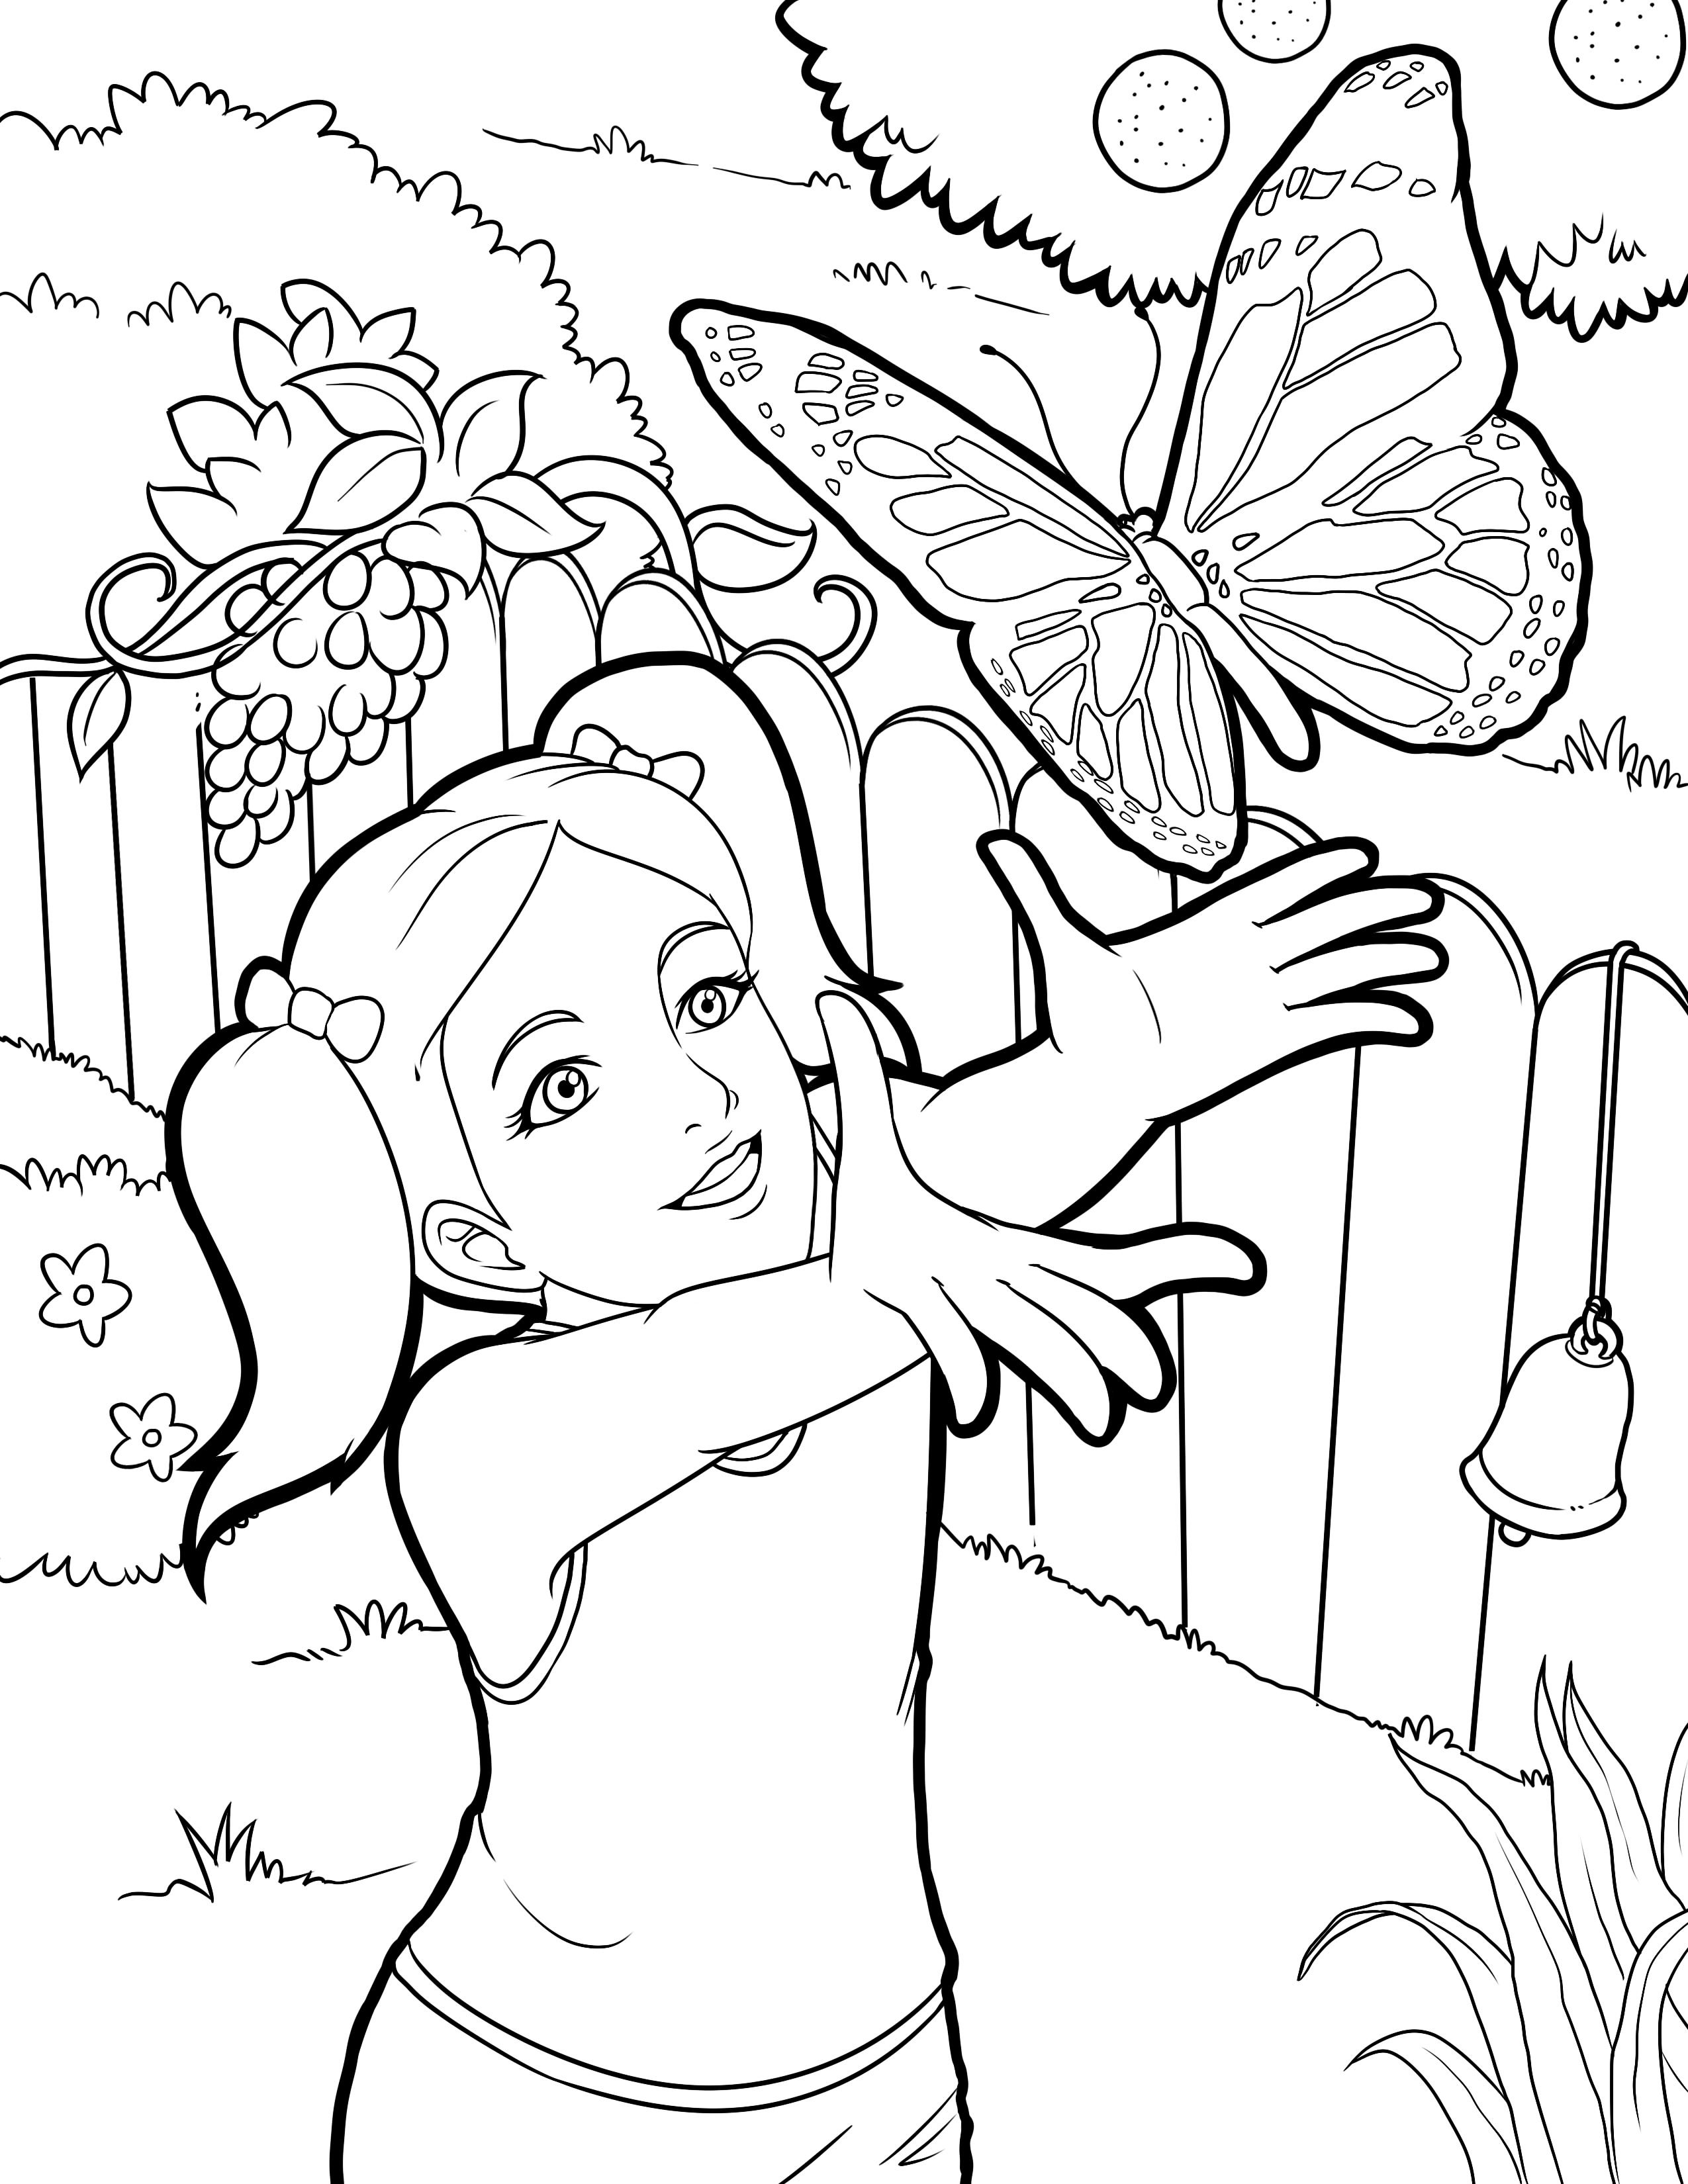 FGC Coloring Pages